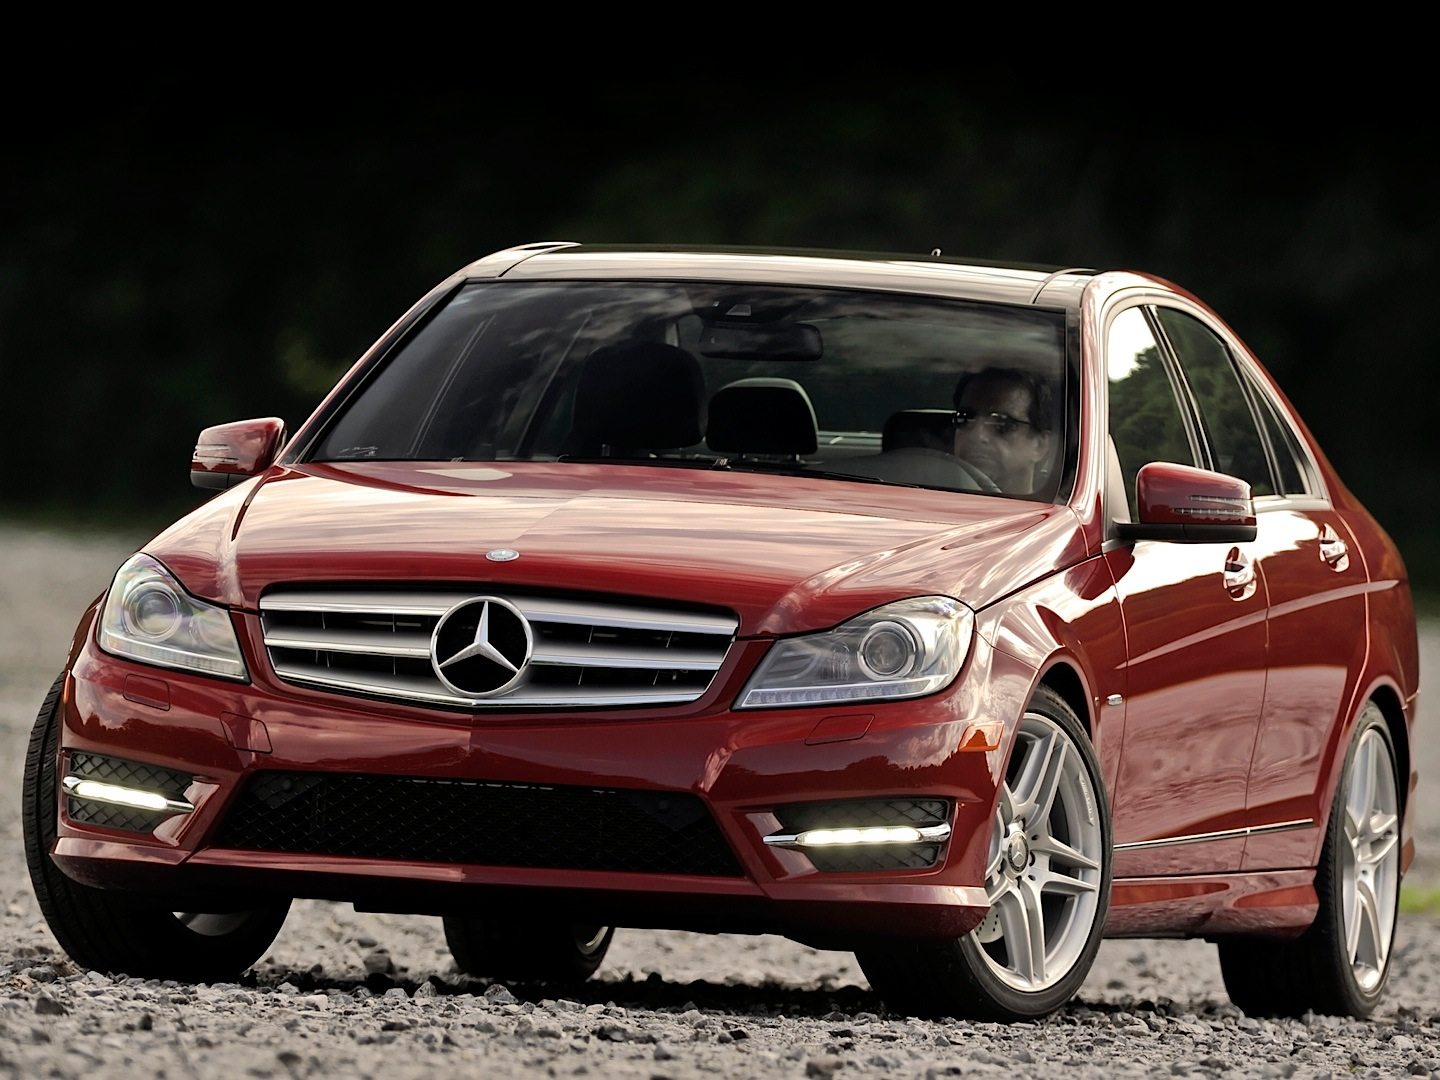 Mercedes benz usa recalls c class w204 for taillights for Mercedes benz ua